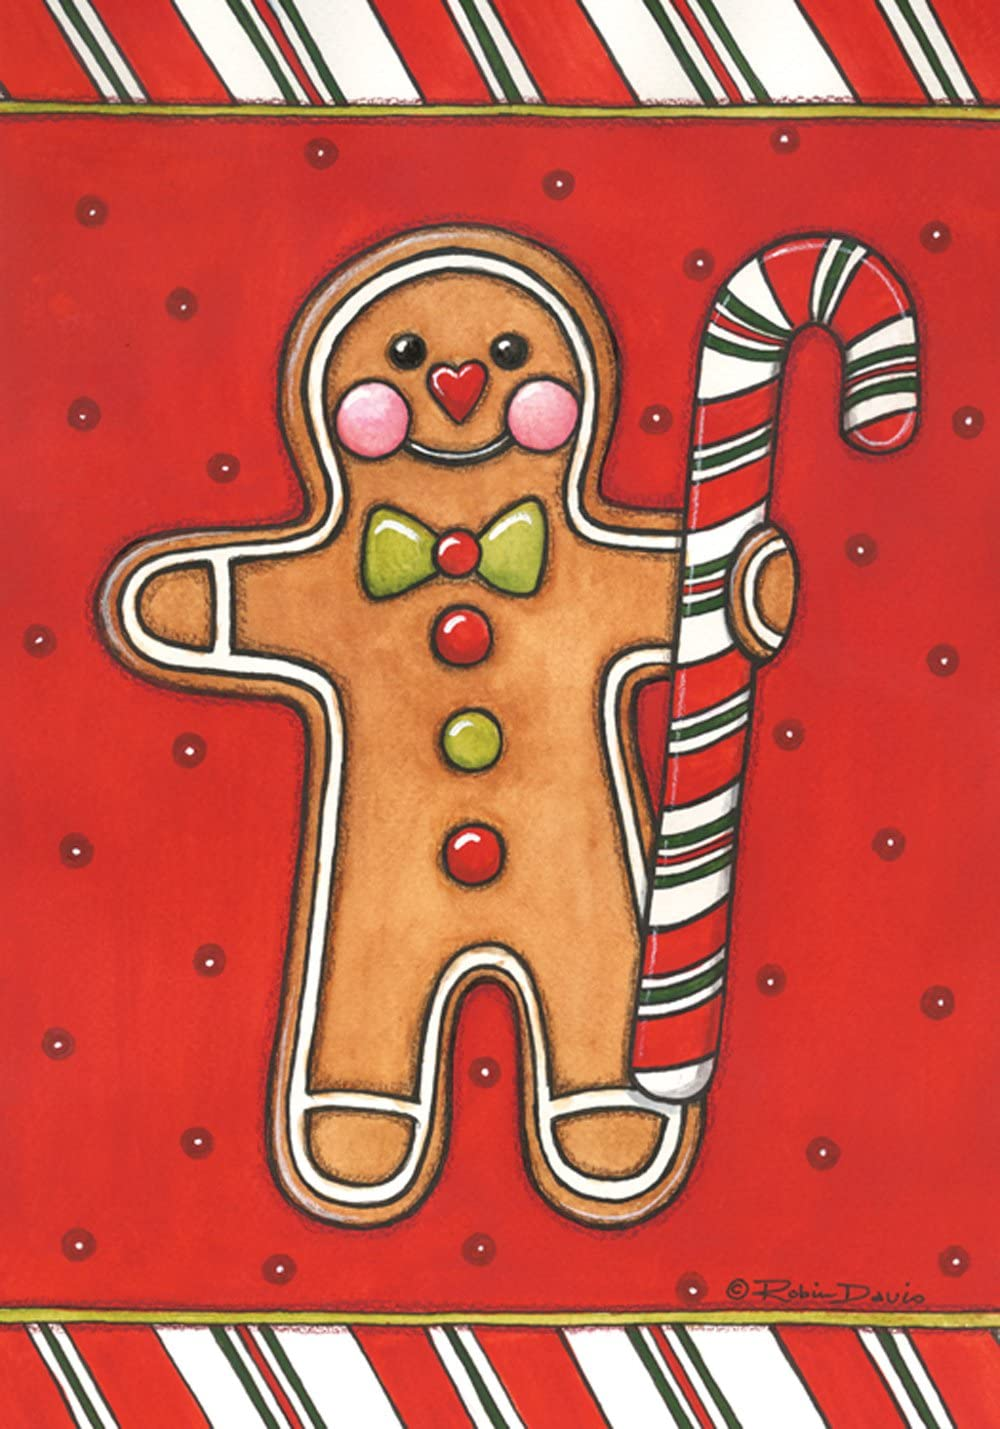 Toland Home Garden Gingerbread Man 12.5 x 18 Inch Decorative Colorful Christmas Holiday Cookie Candy Cane Garden Flag